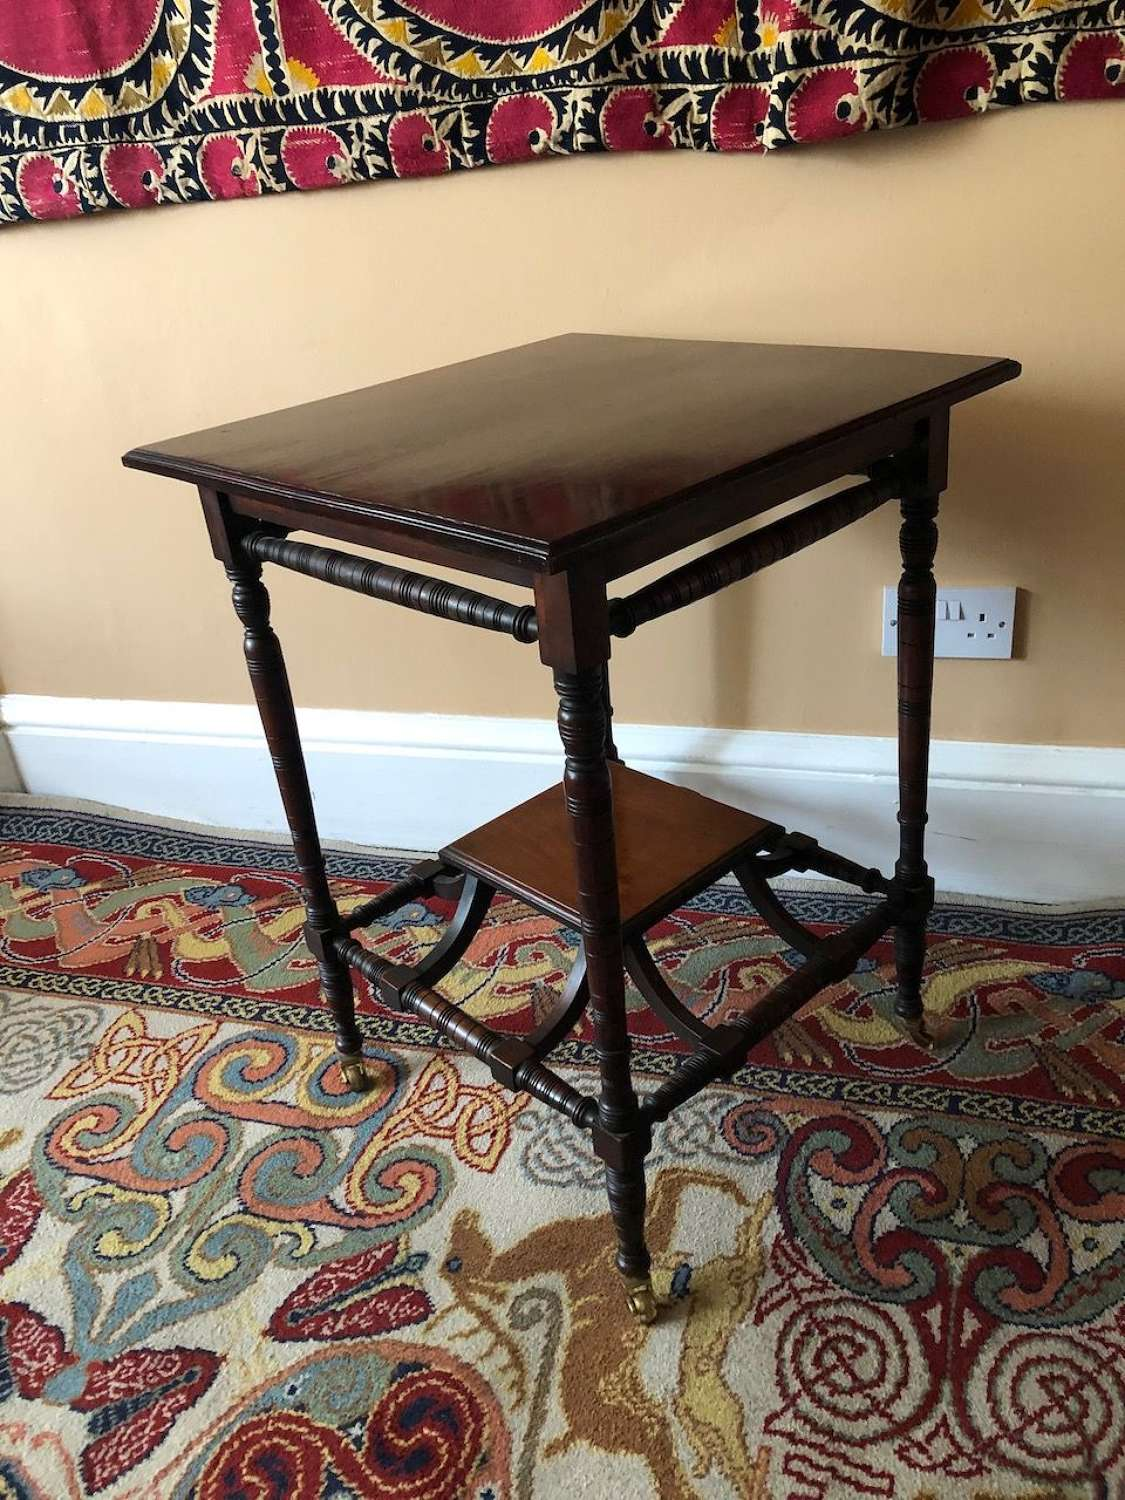 A Victorian Aesthetic table